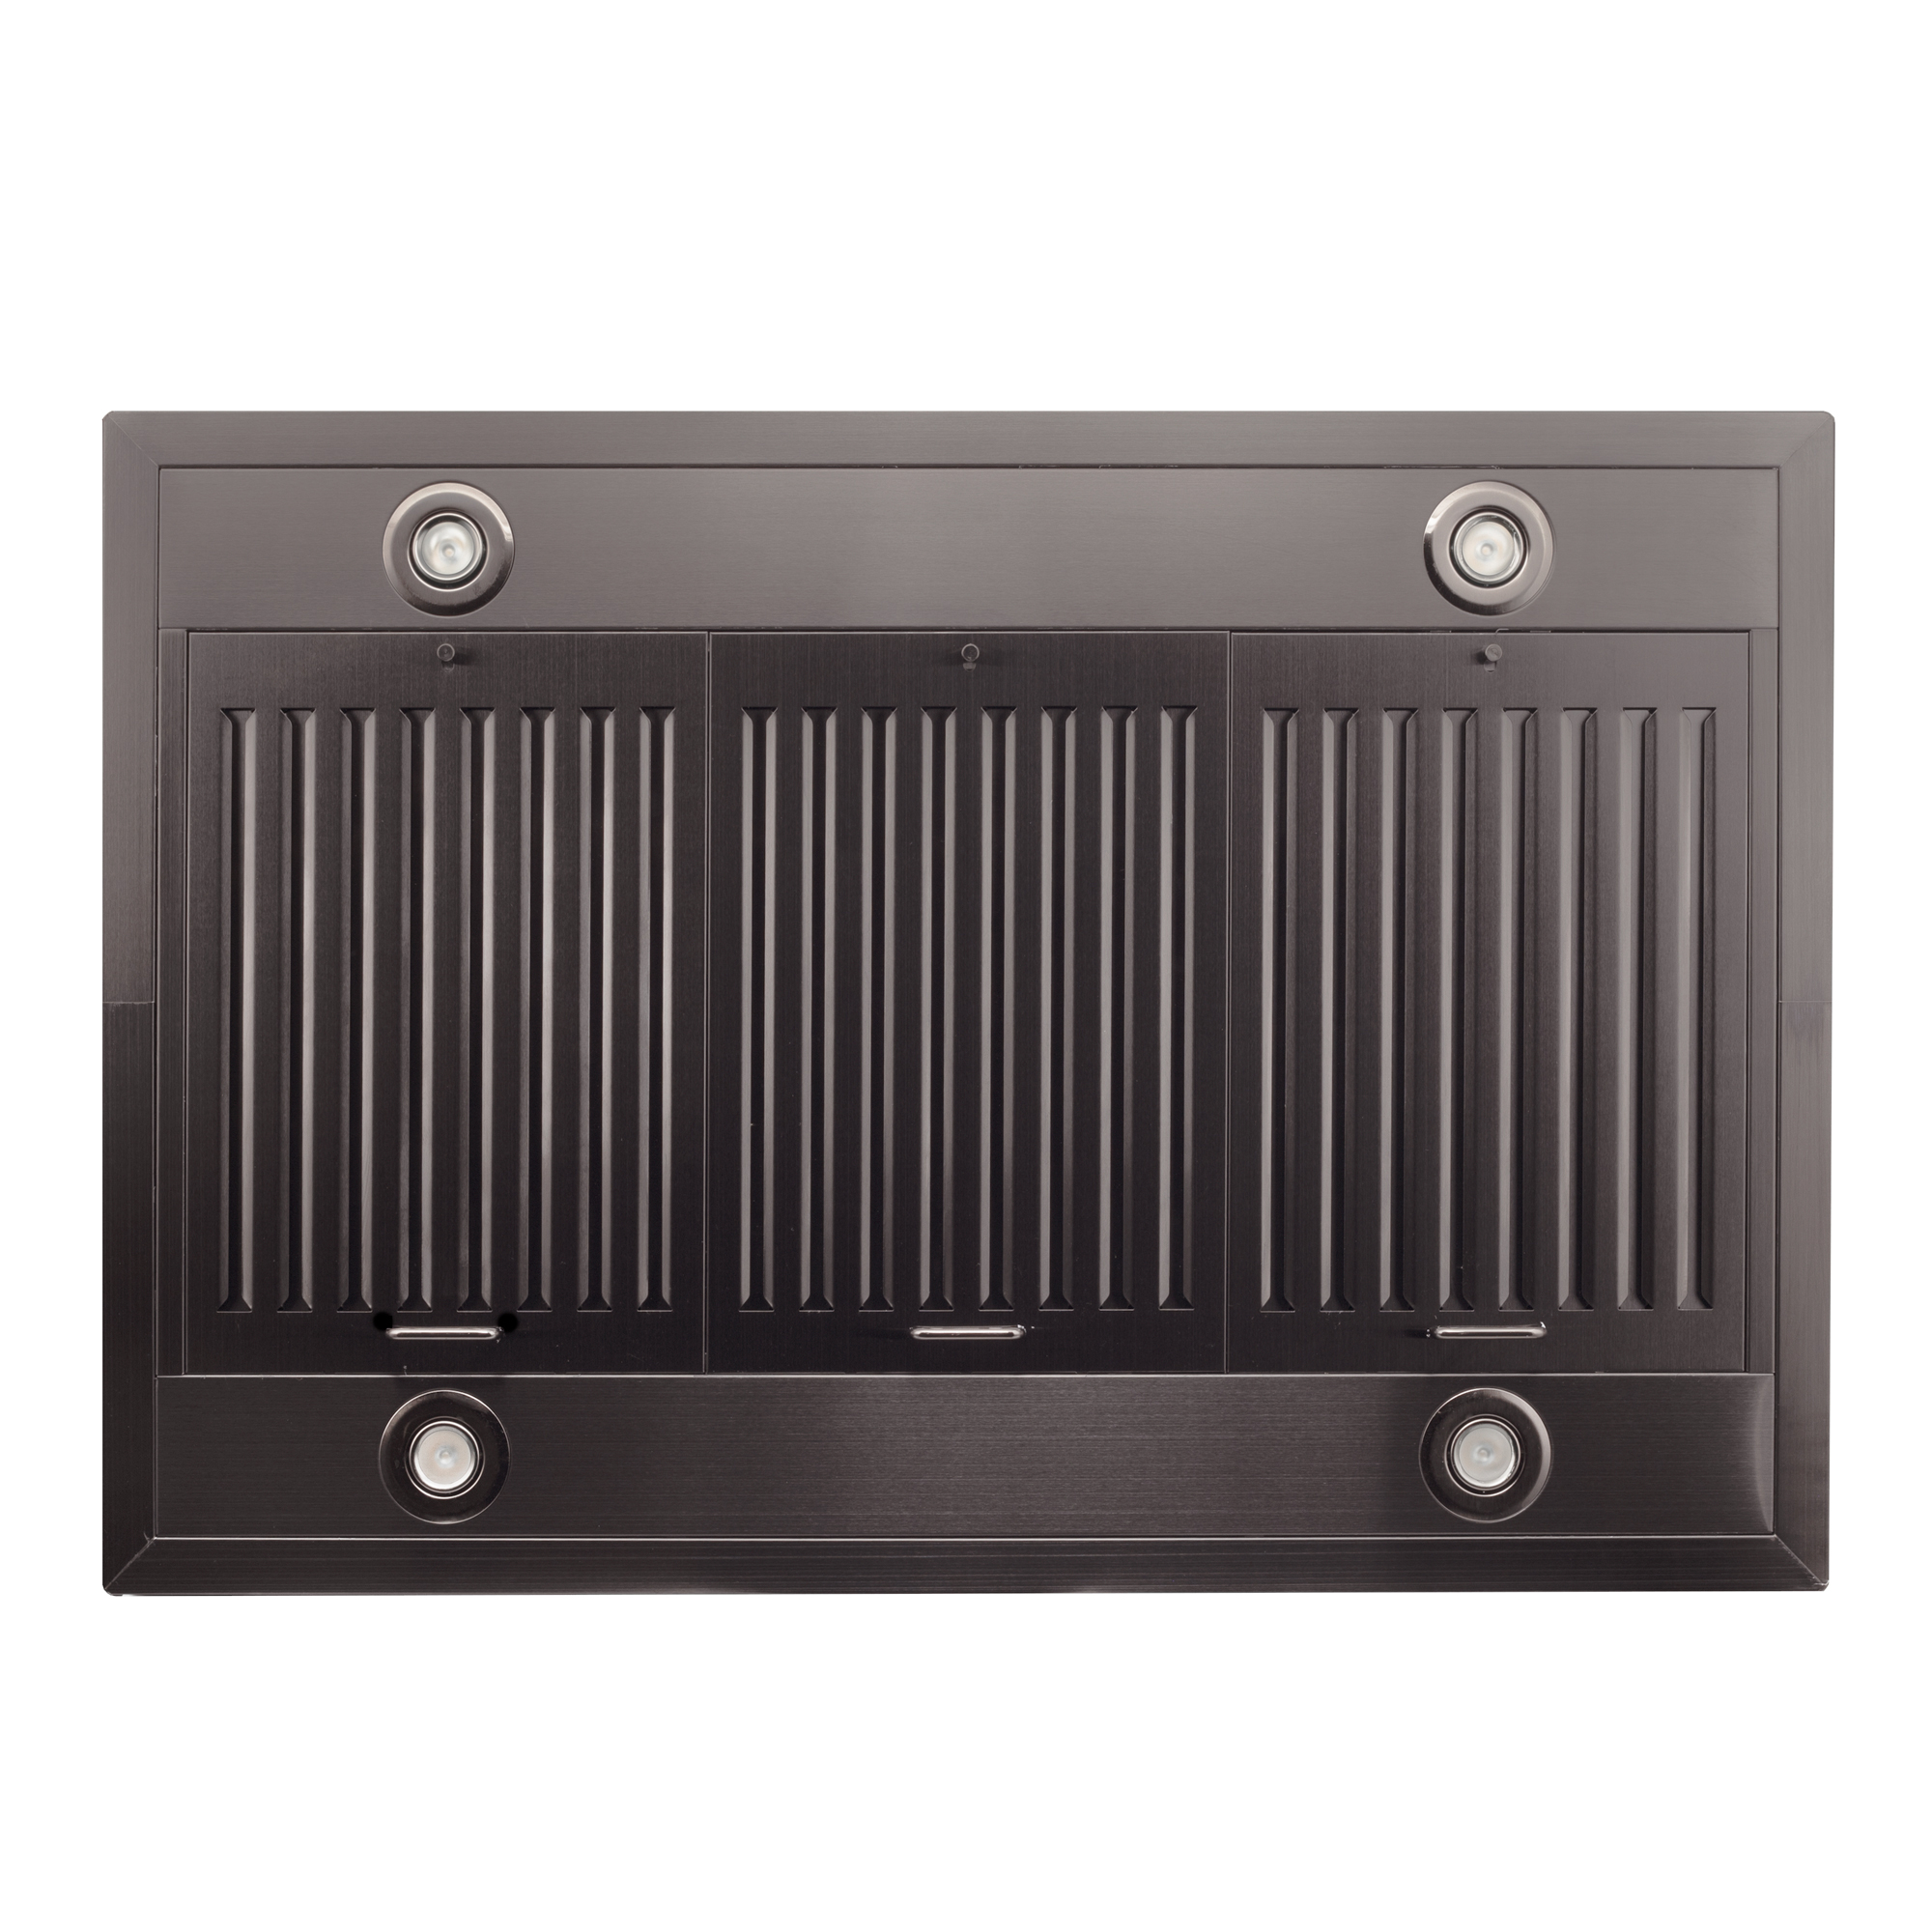 zline-black-stainless-steel-island-range-hood-BSGL2iN-bottom.jpg